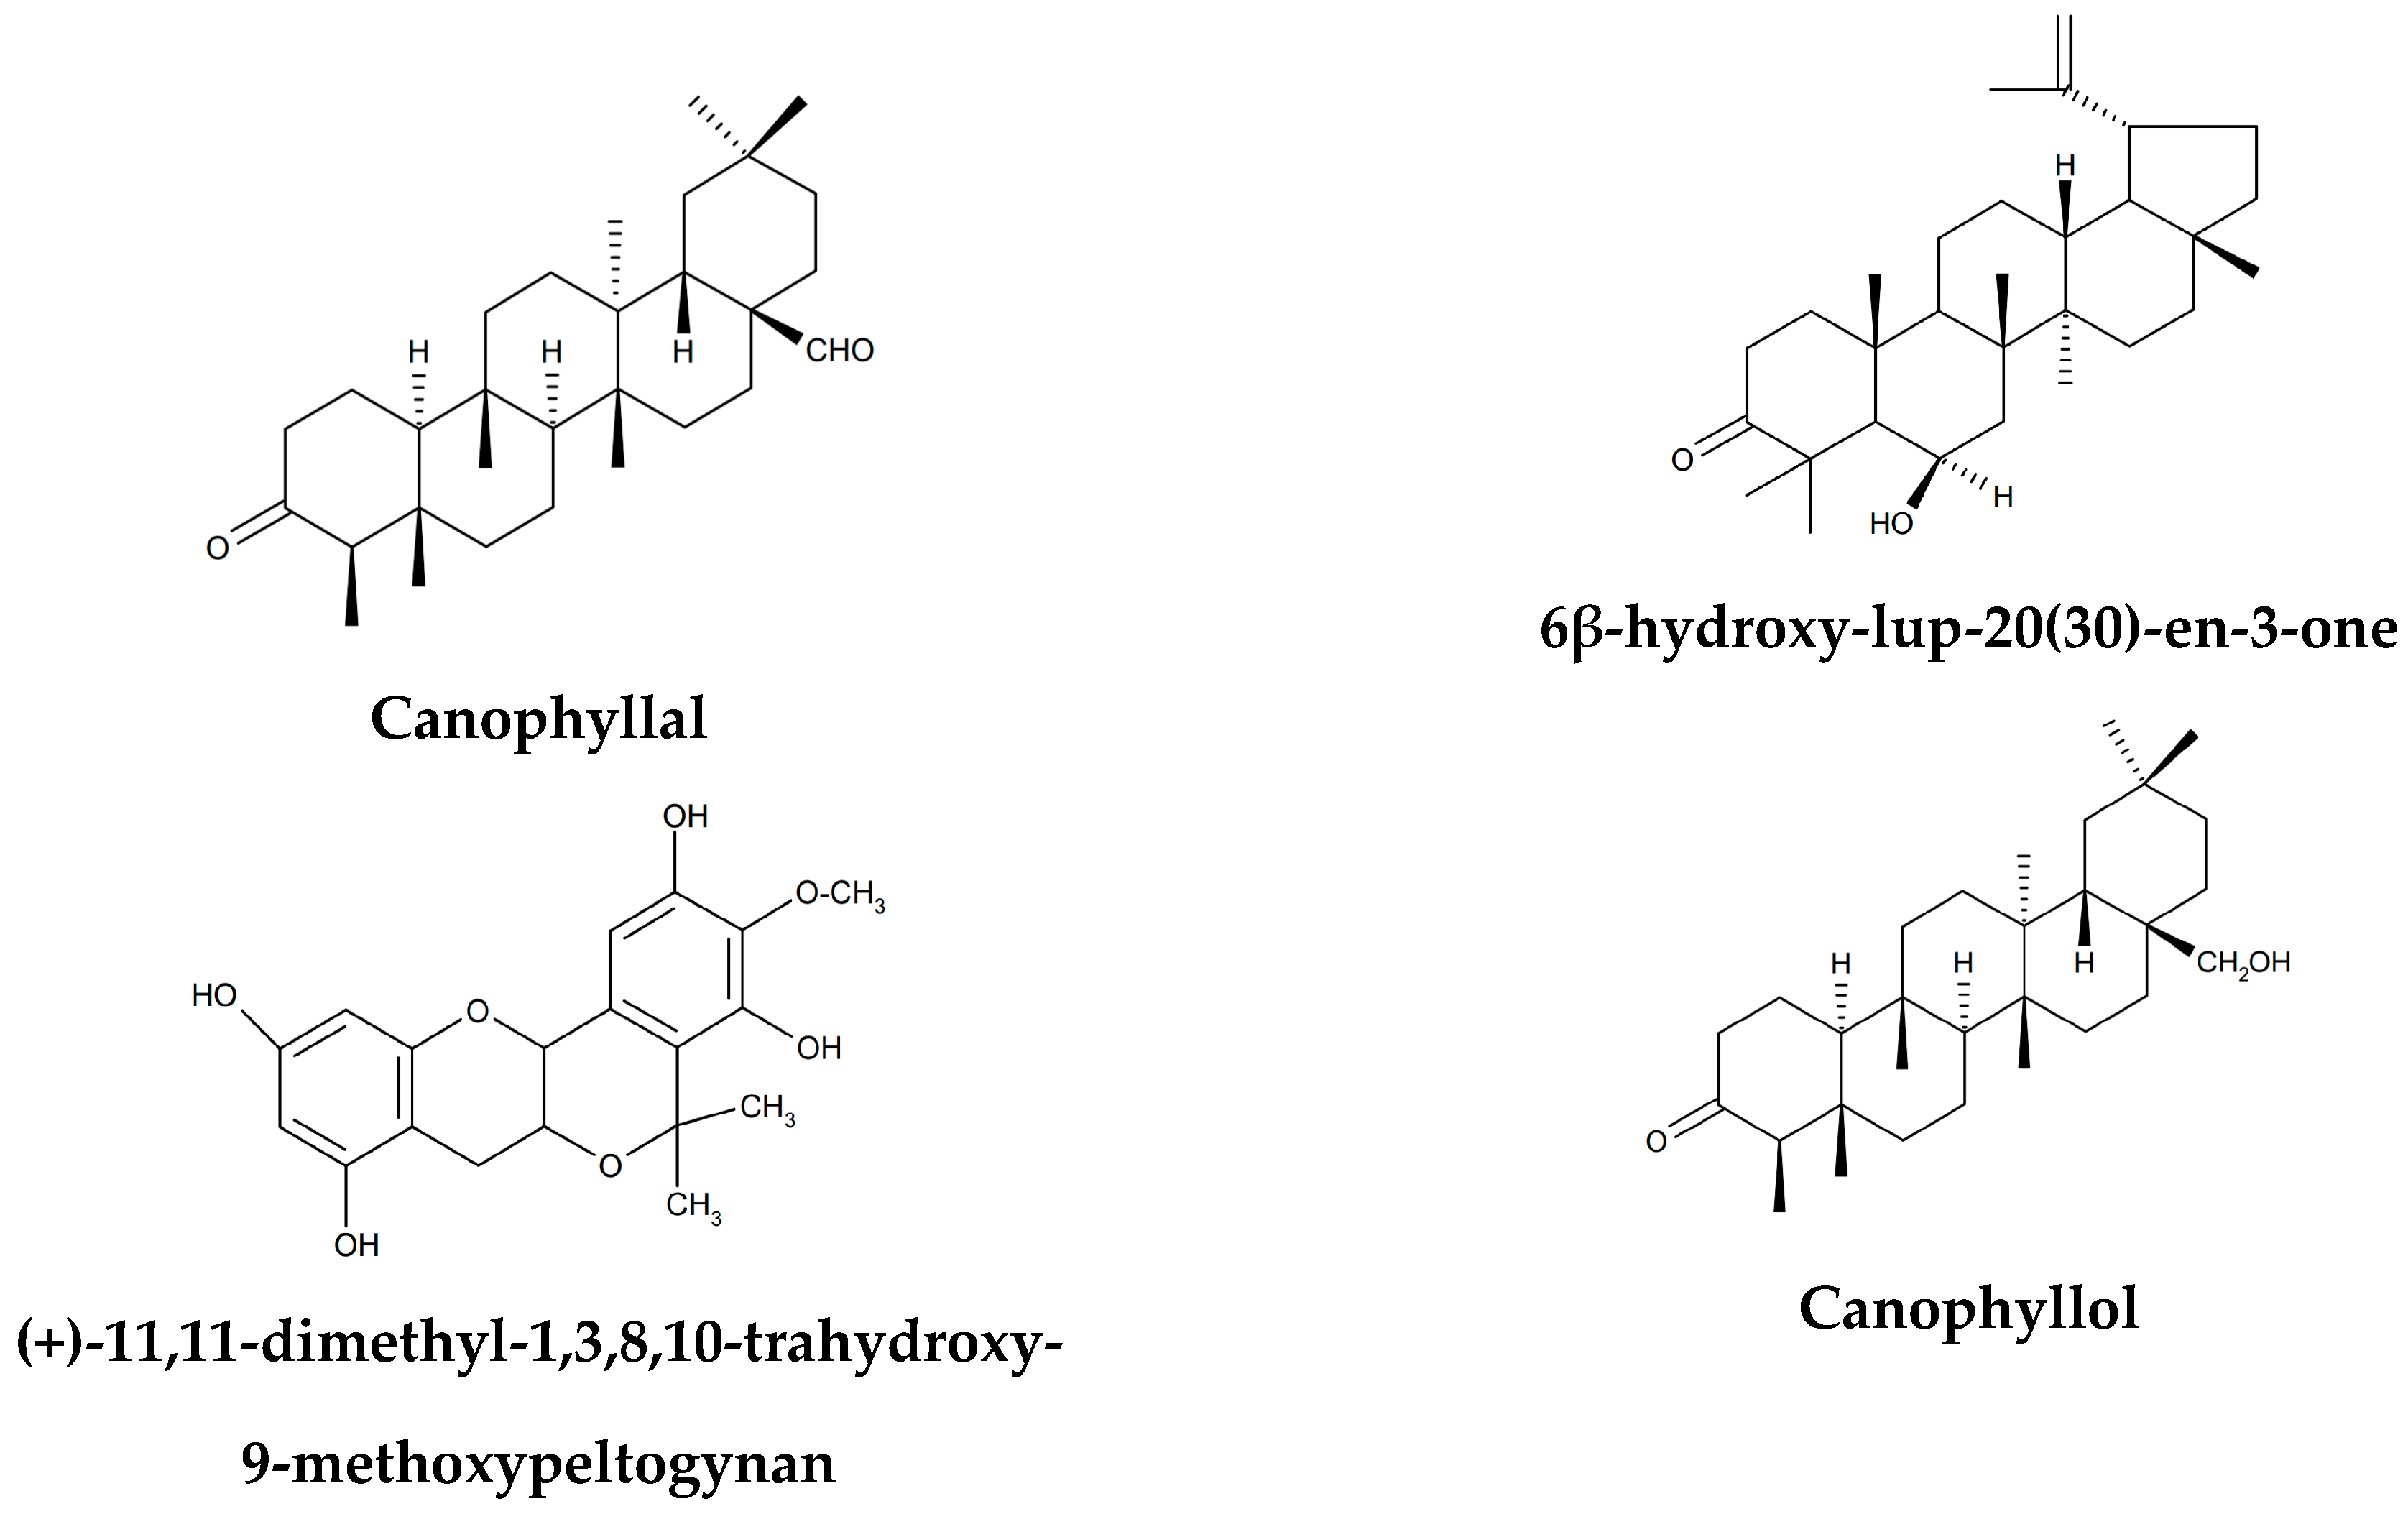 Nutrients | Free Full-Text | Medicinal Uses, Phytochemistry